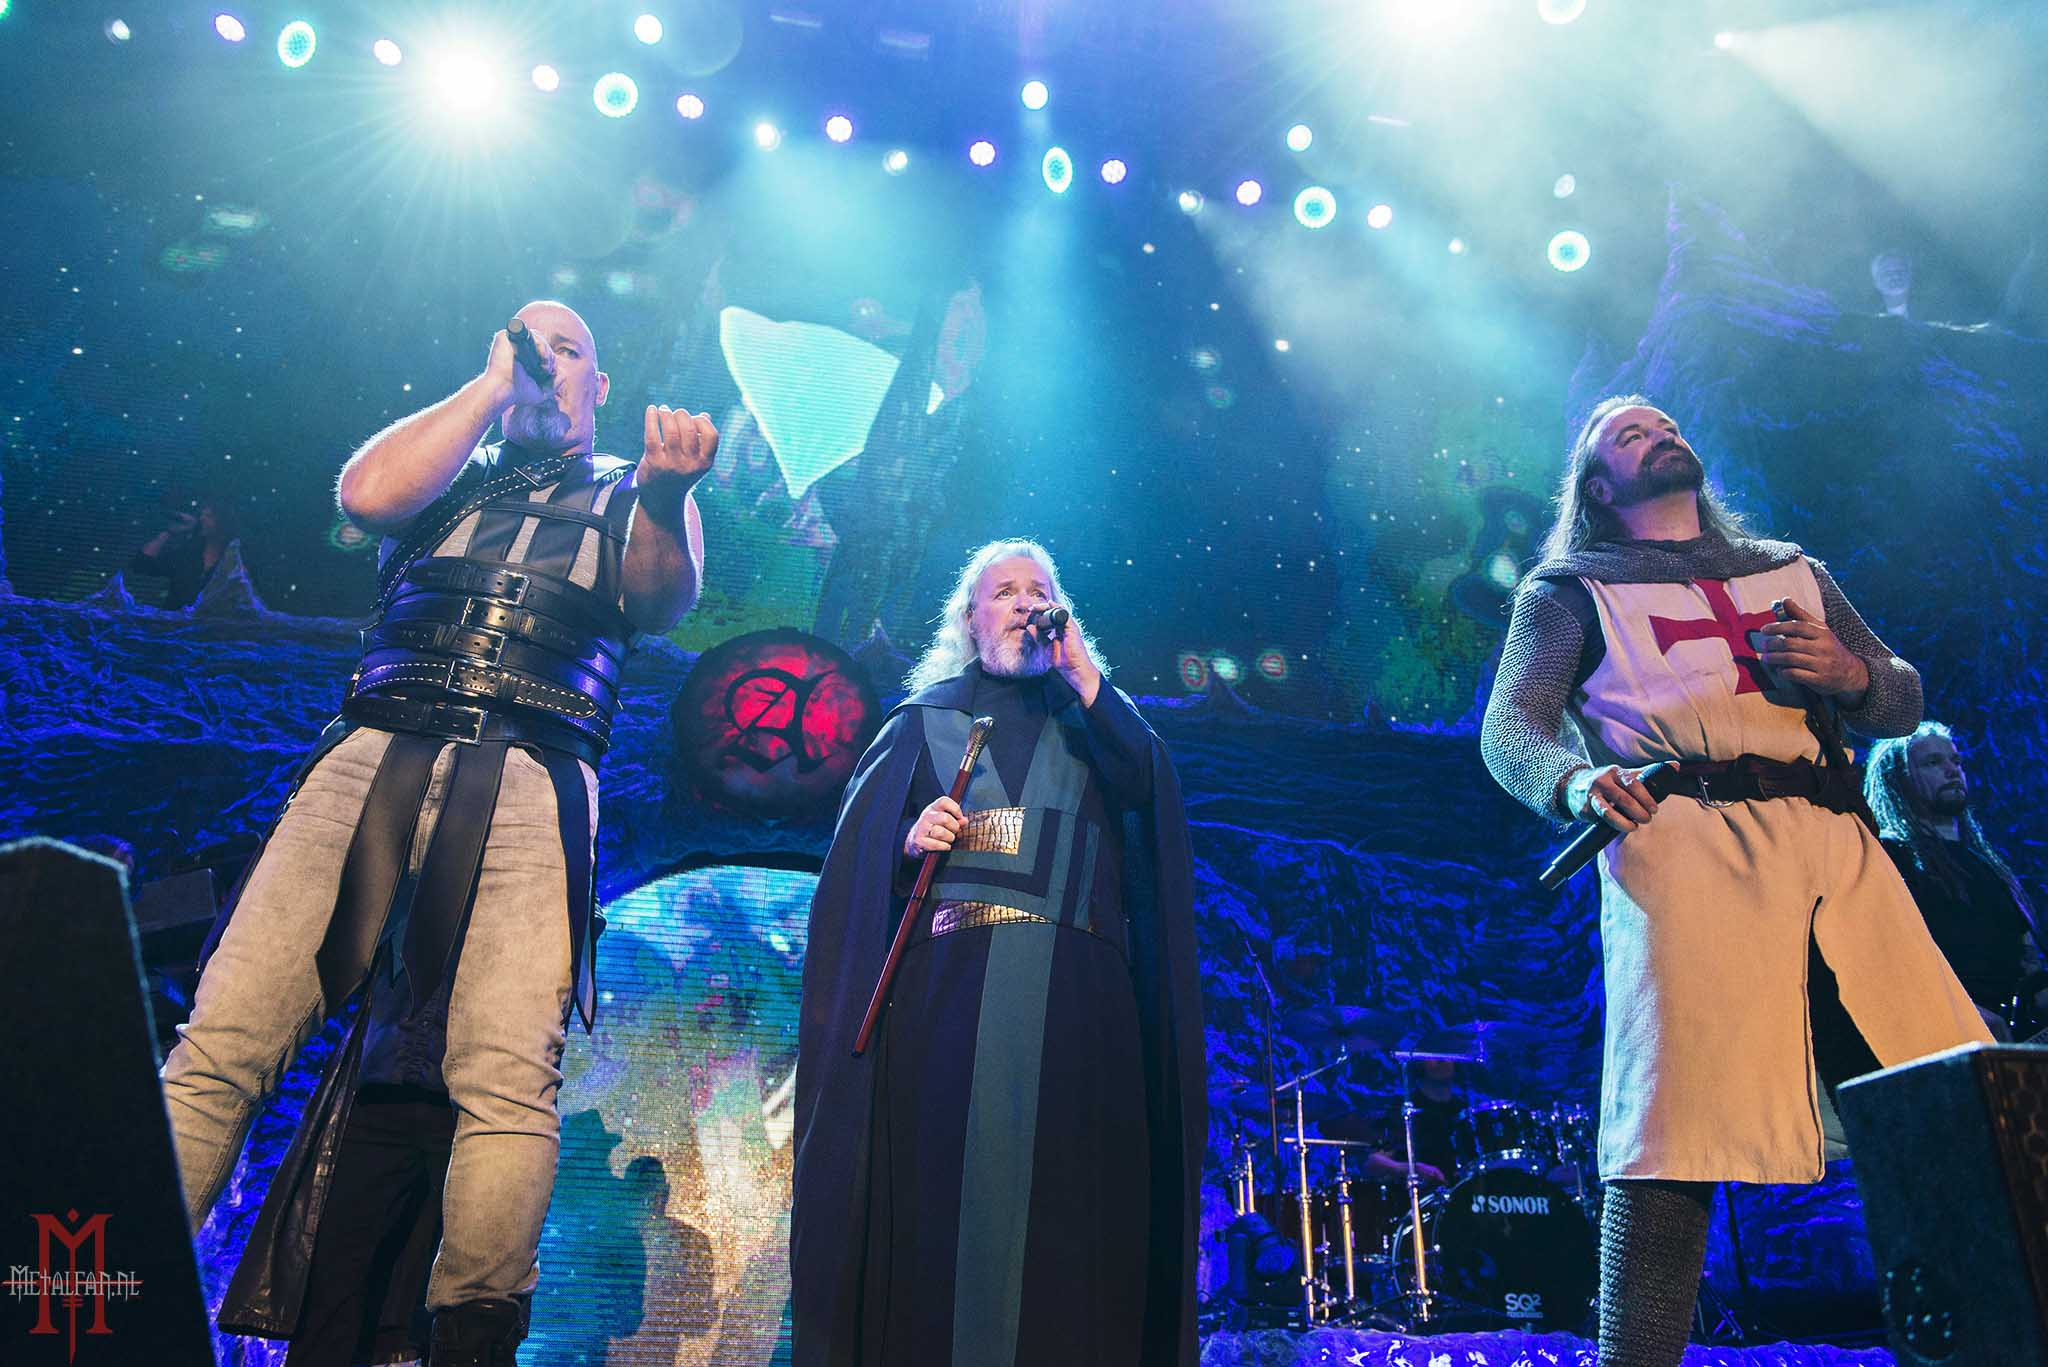 Ayreon - Electric Castle Live and Other Tales, 14-9-2019, Tilburg